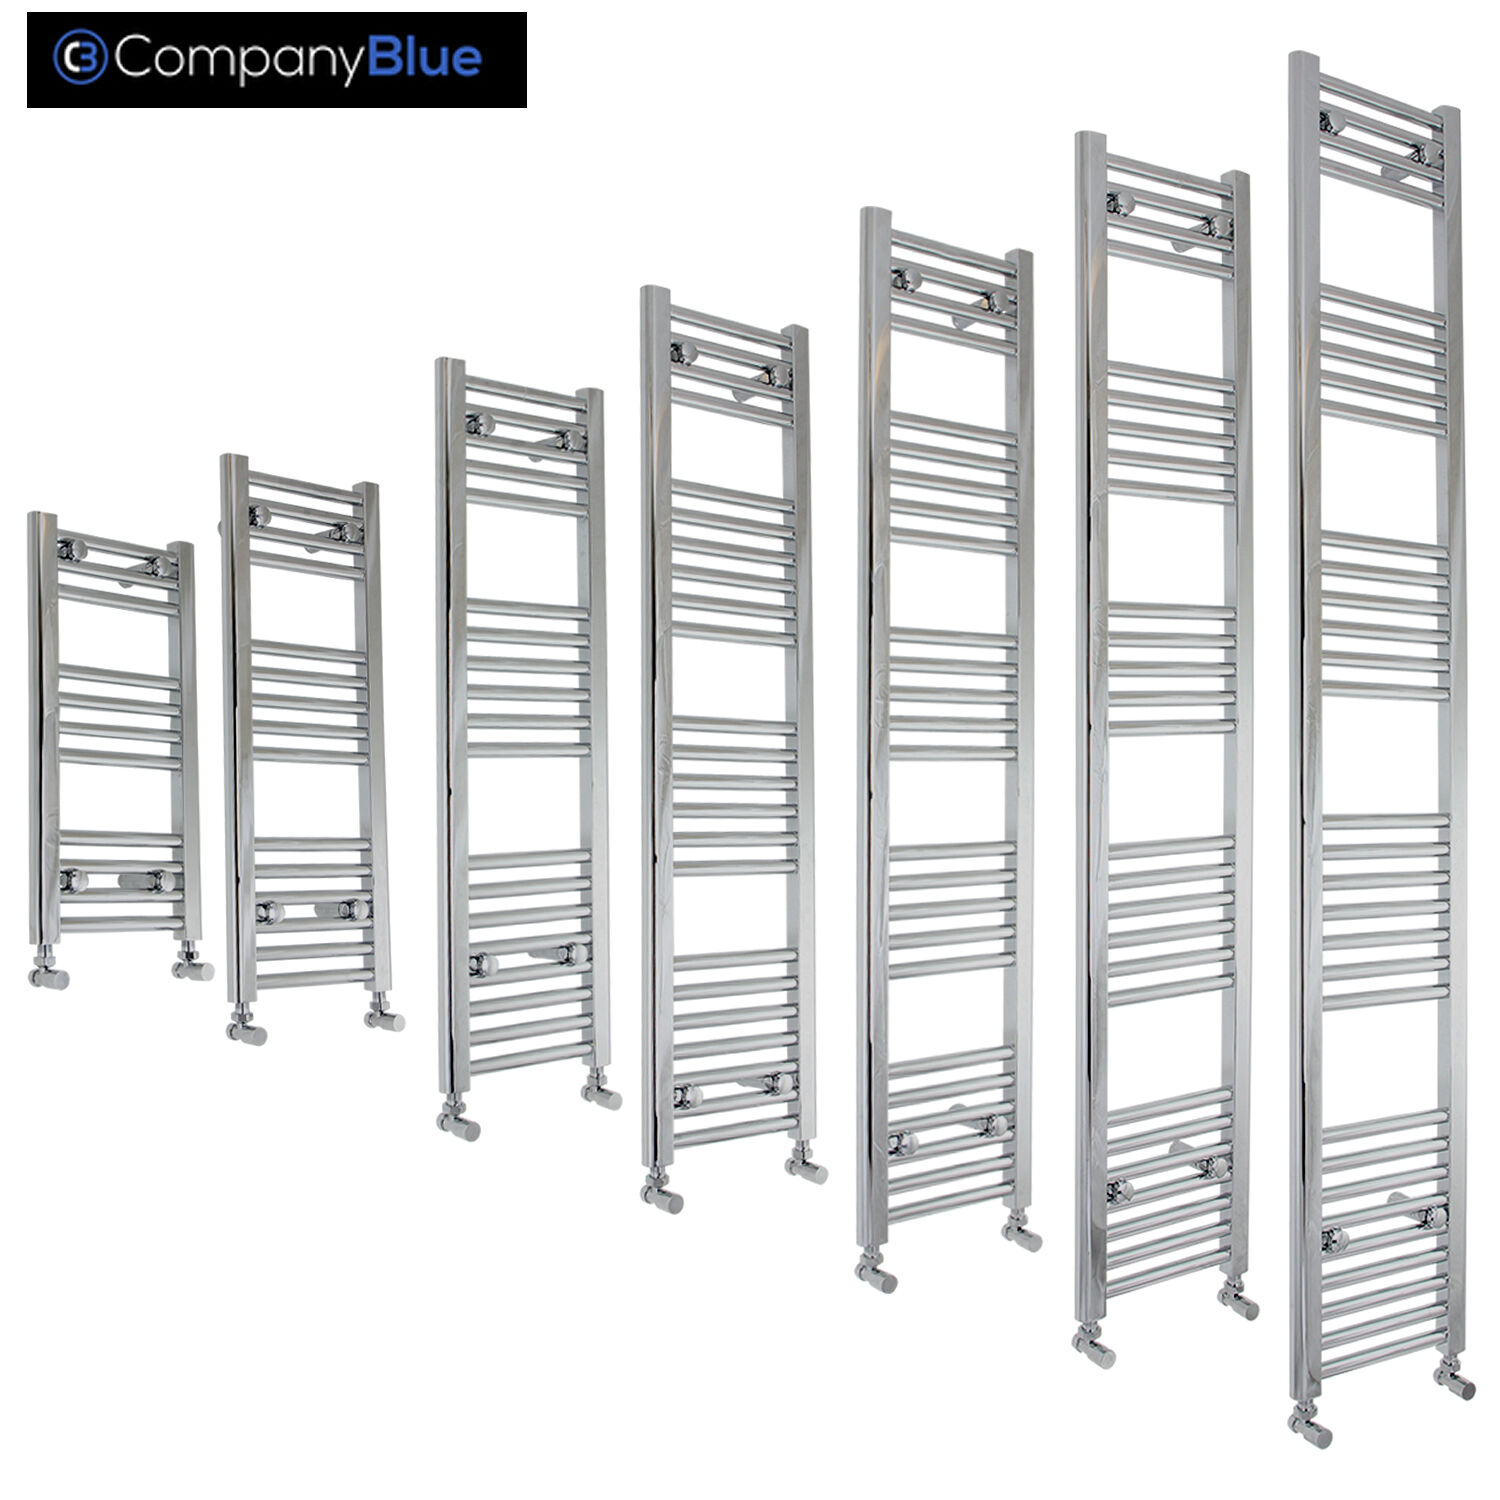 Central Heating Towel Rail Rad 250mm Wide Bathroom Radiator Heated Chrome Warmer